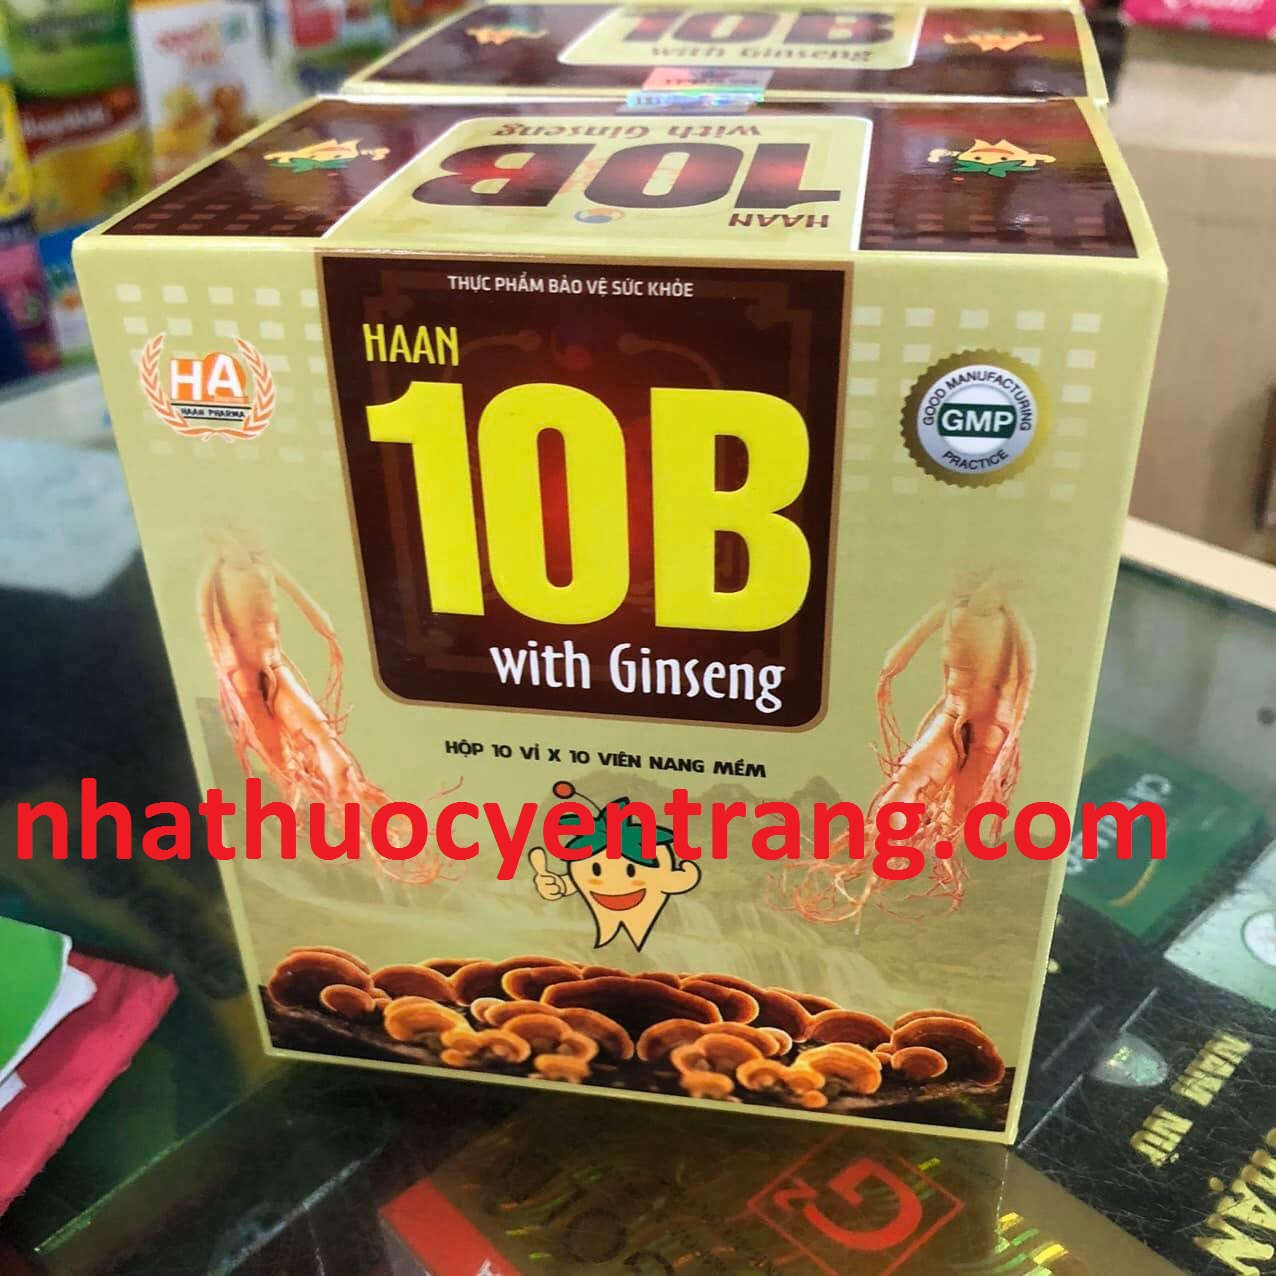 10b-with-ginseng-t